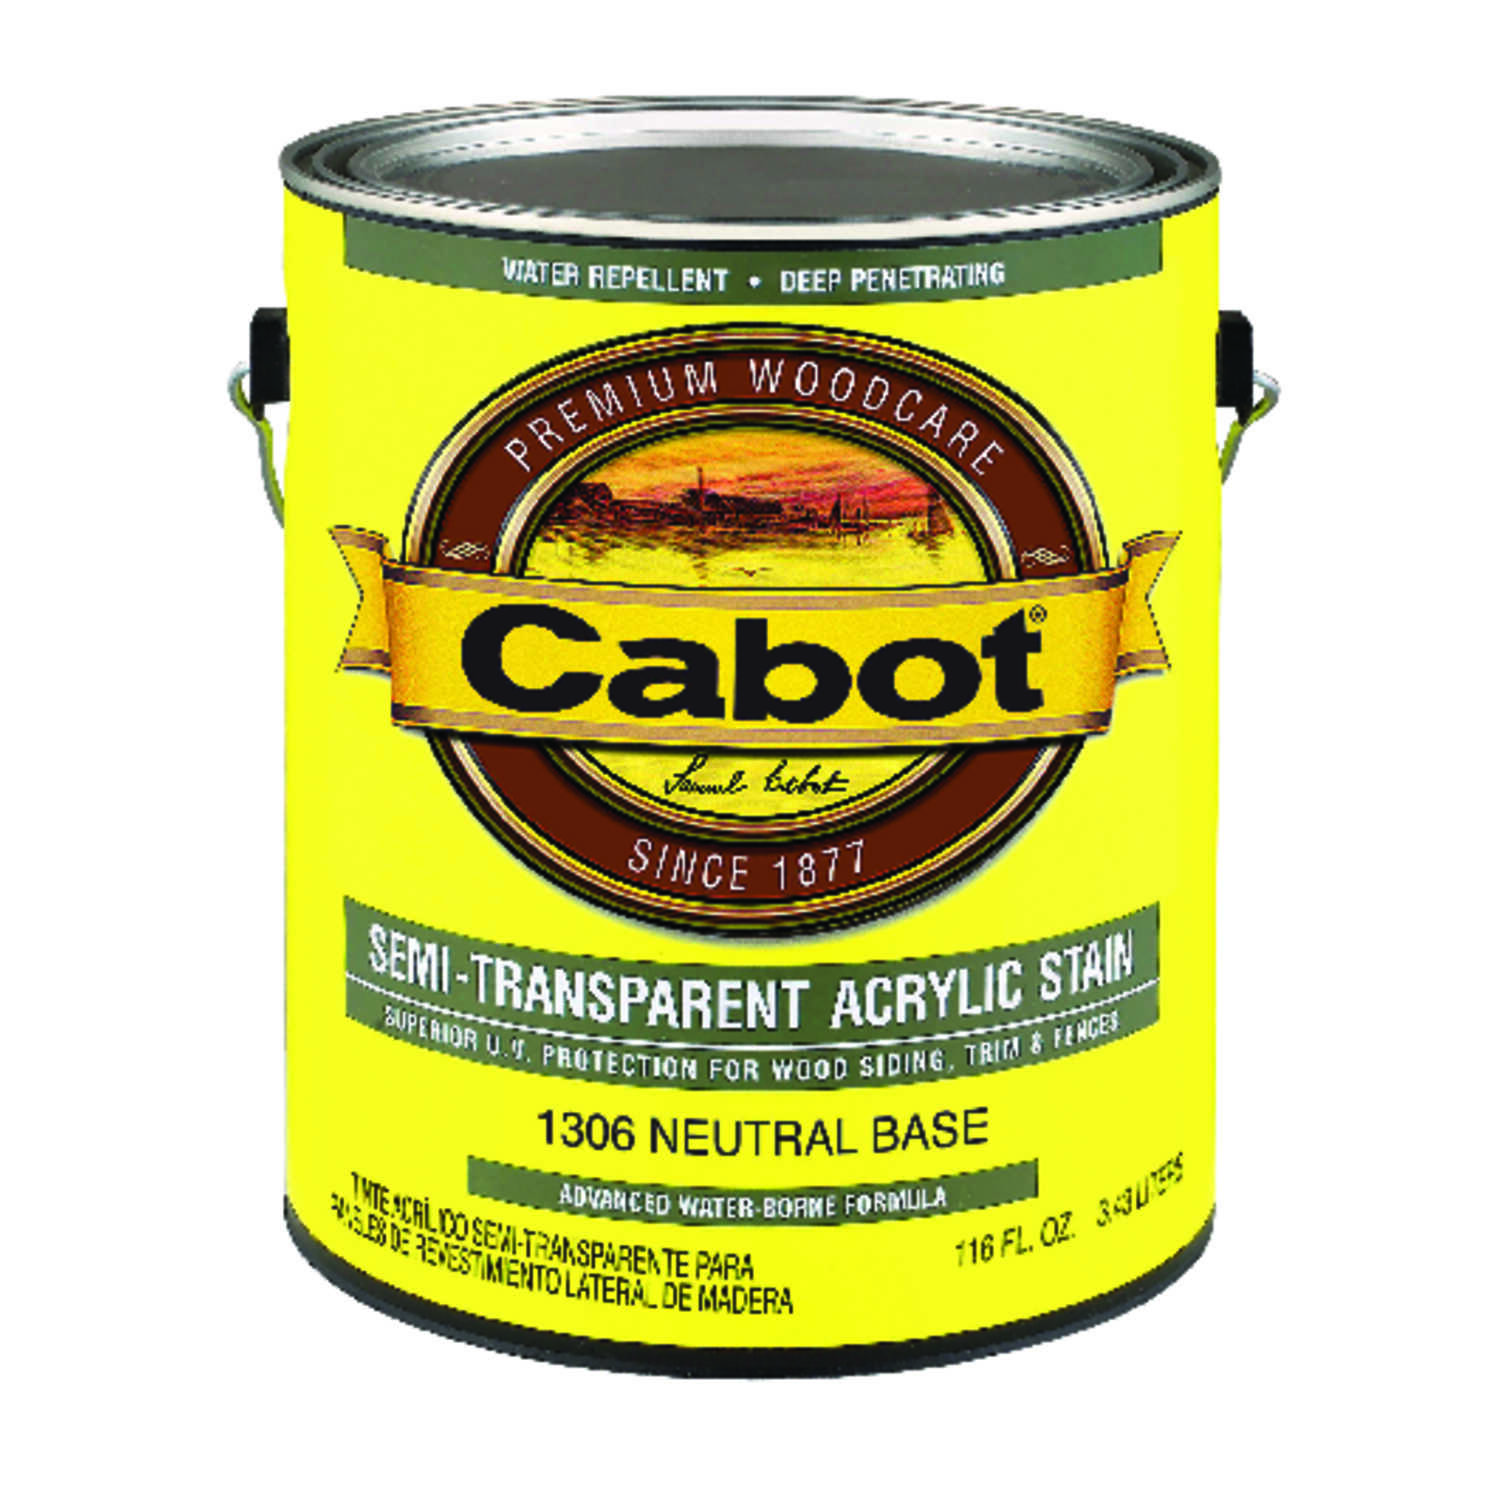 Cabot  Semi-Transparent  Neutral Base  Water-Based  Acrylic  Stain  1 gal.